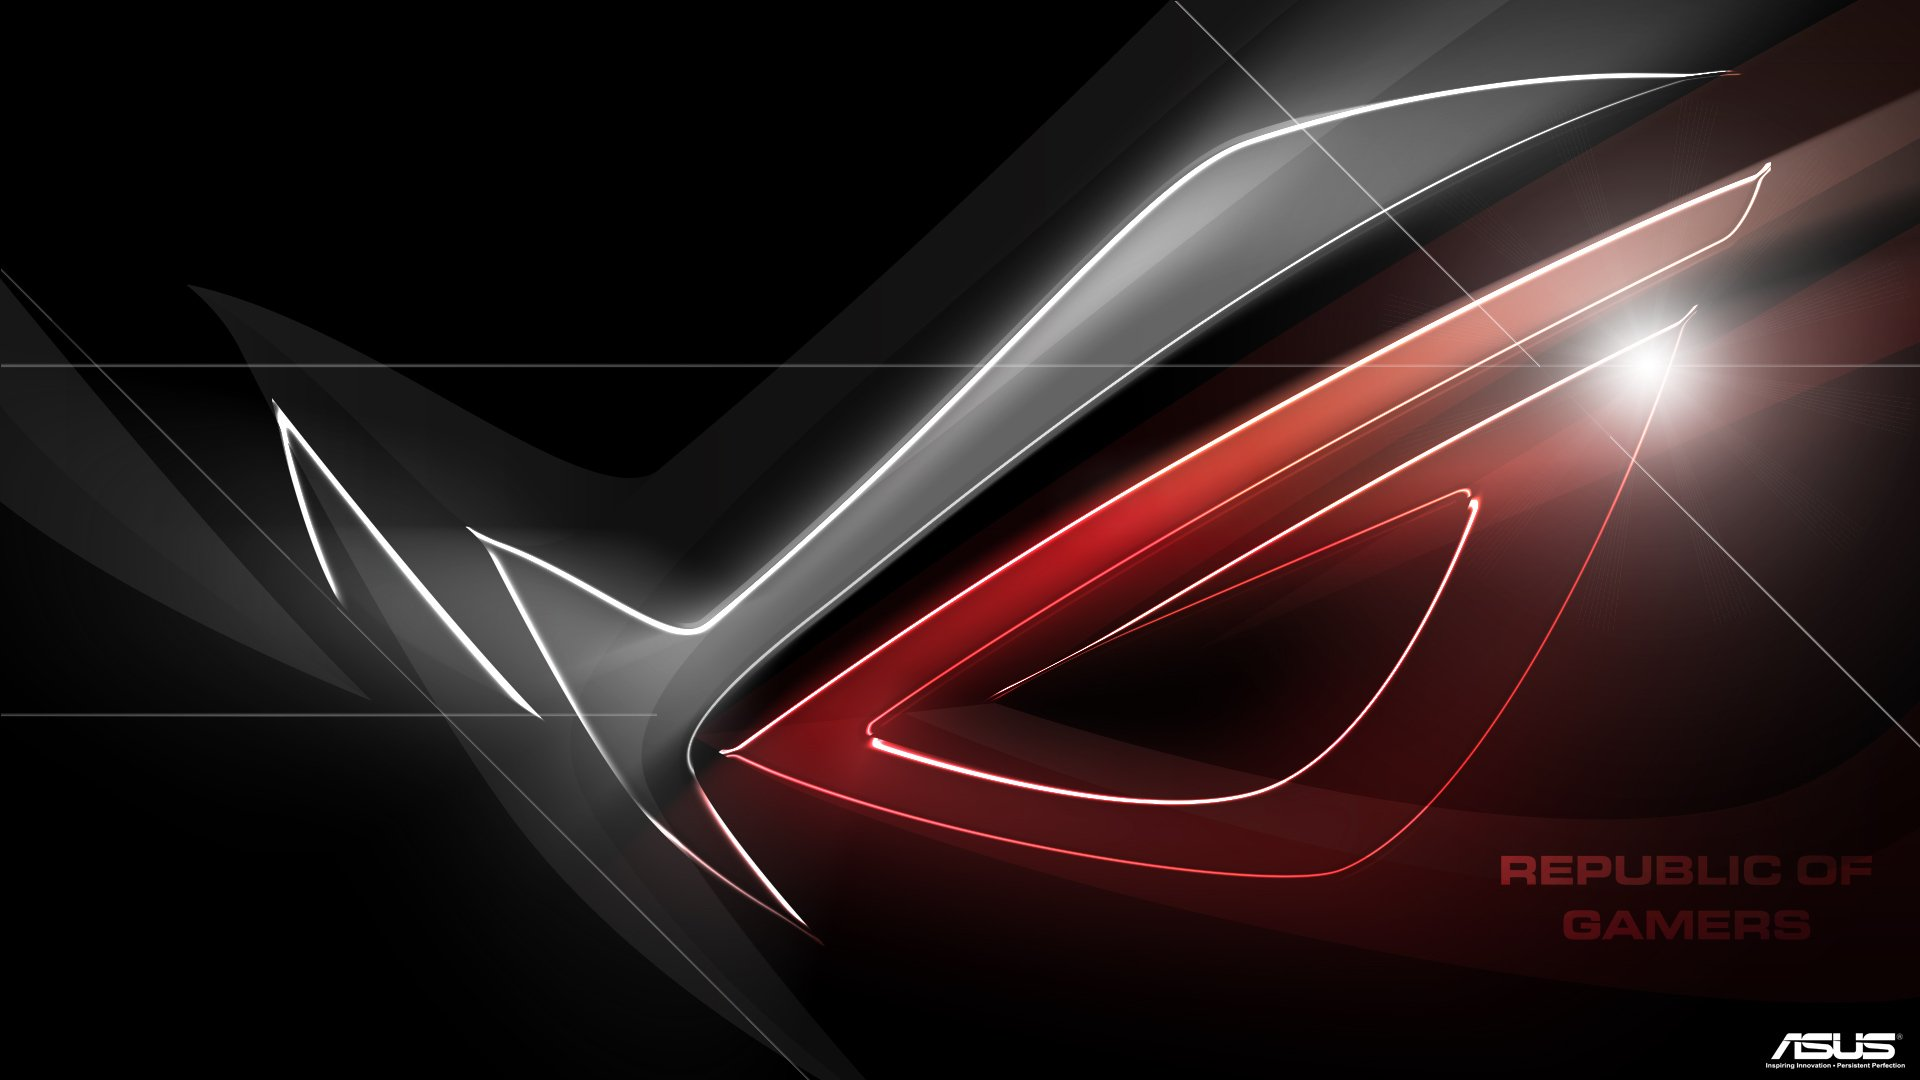 asus red tecnology wallpaper - photo #13